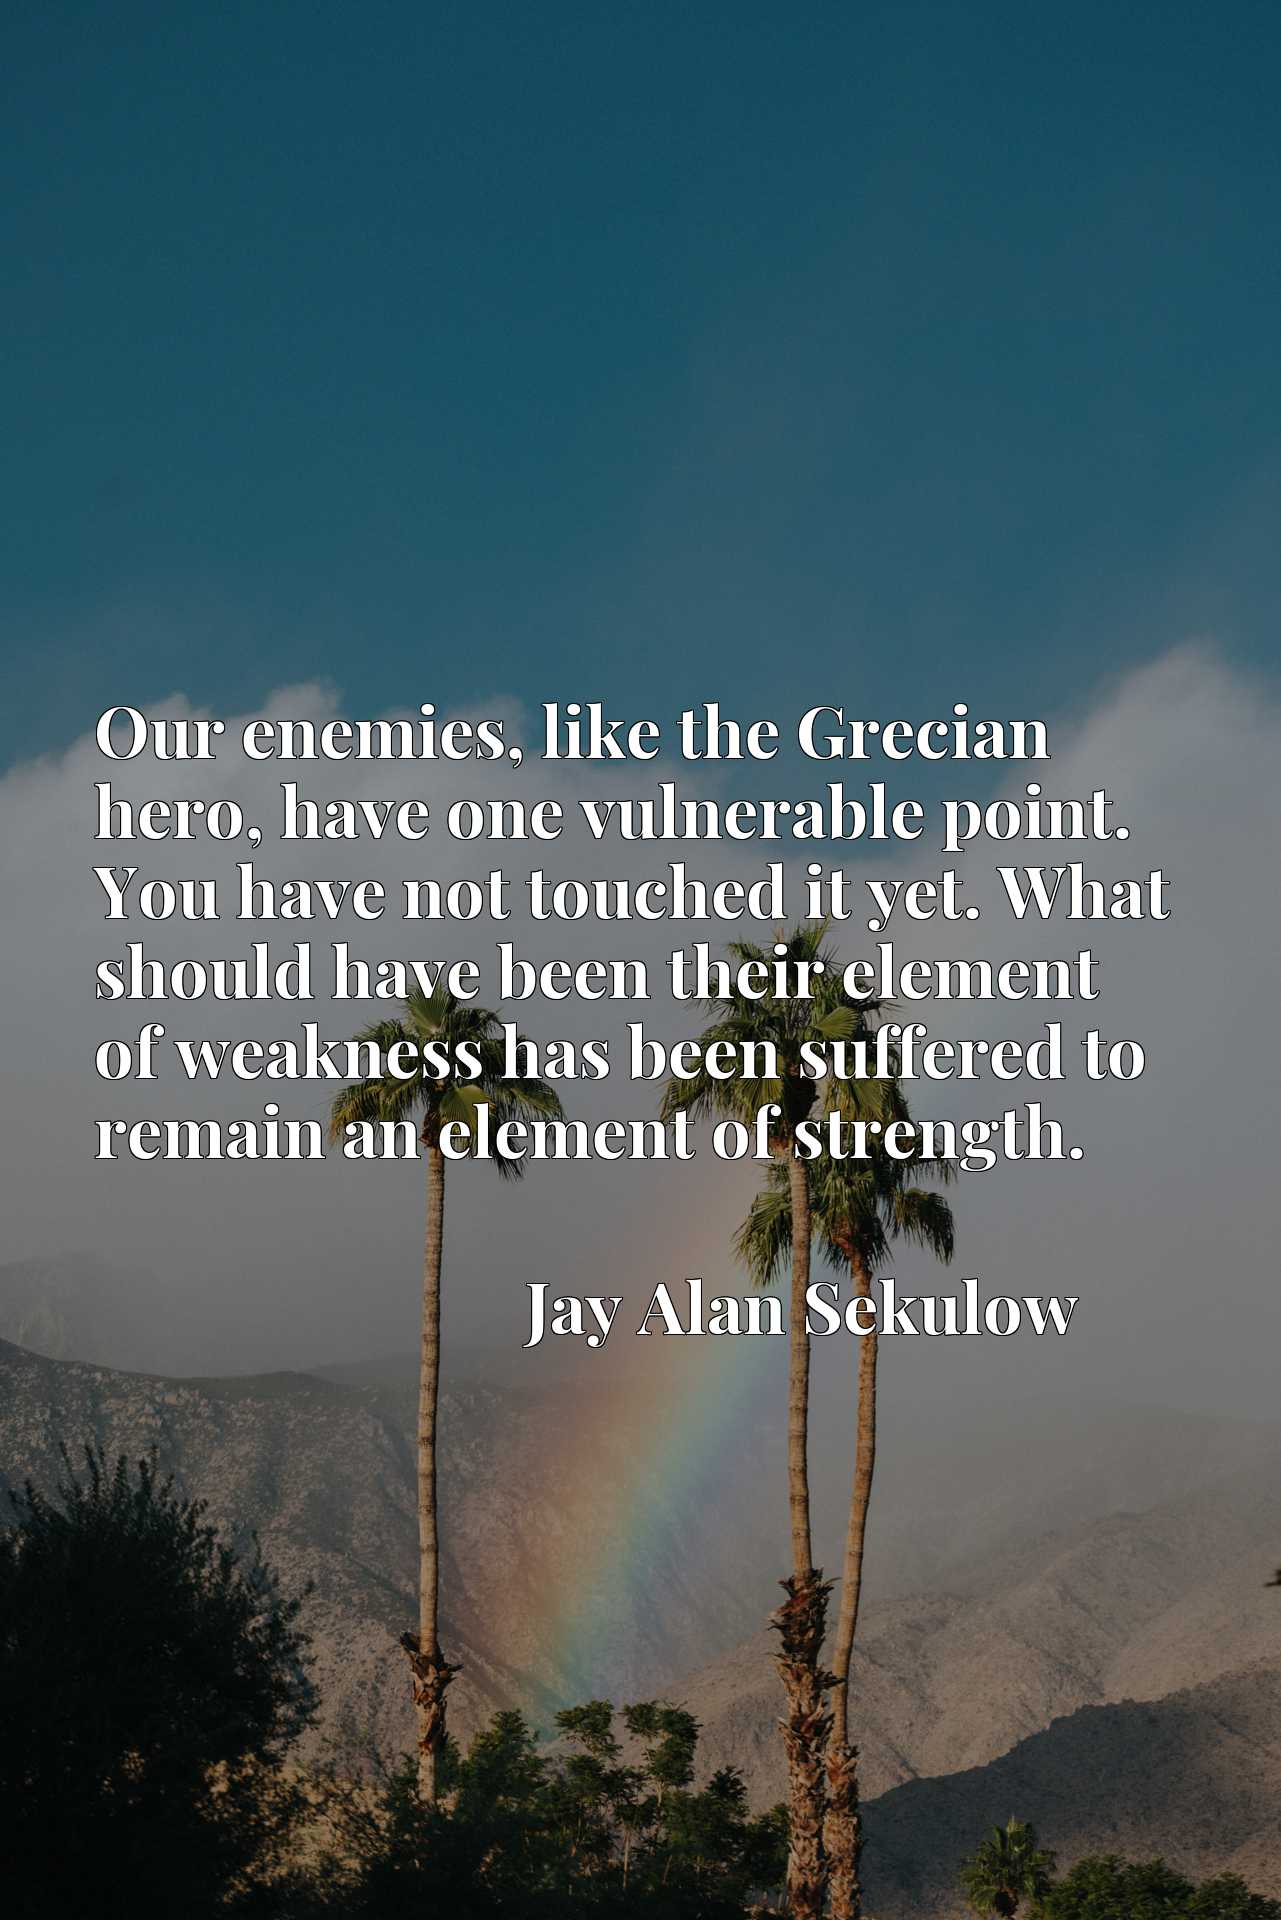 Our enemies, like the Grecian hero, have one vulnerable point. You have not touched it yet. What should have been their element of weakness has been suffered to remain an element of strength.